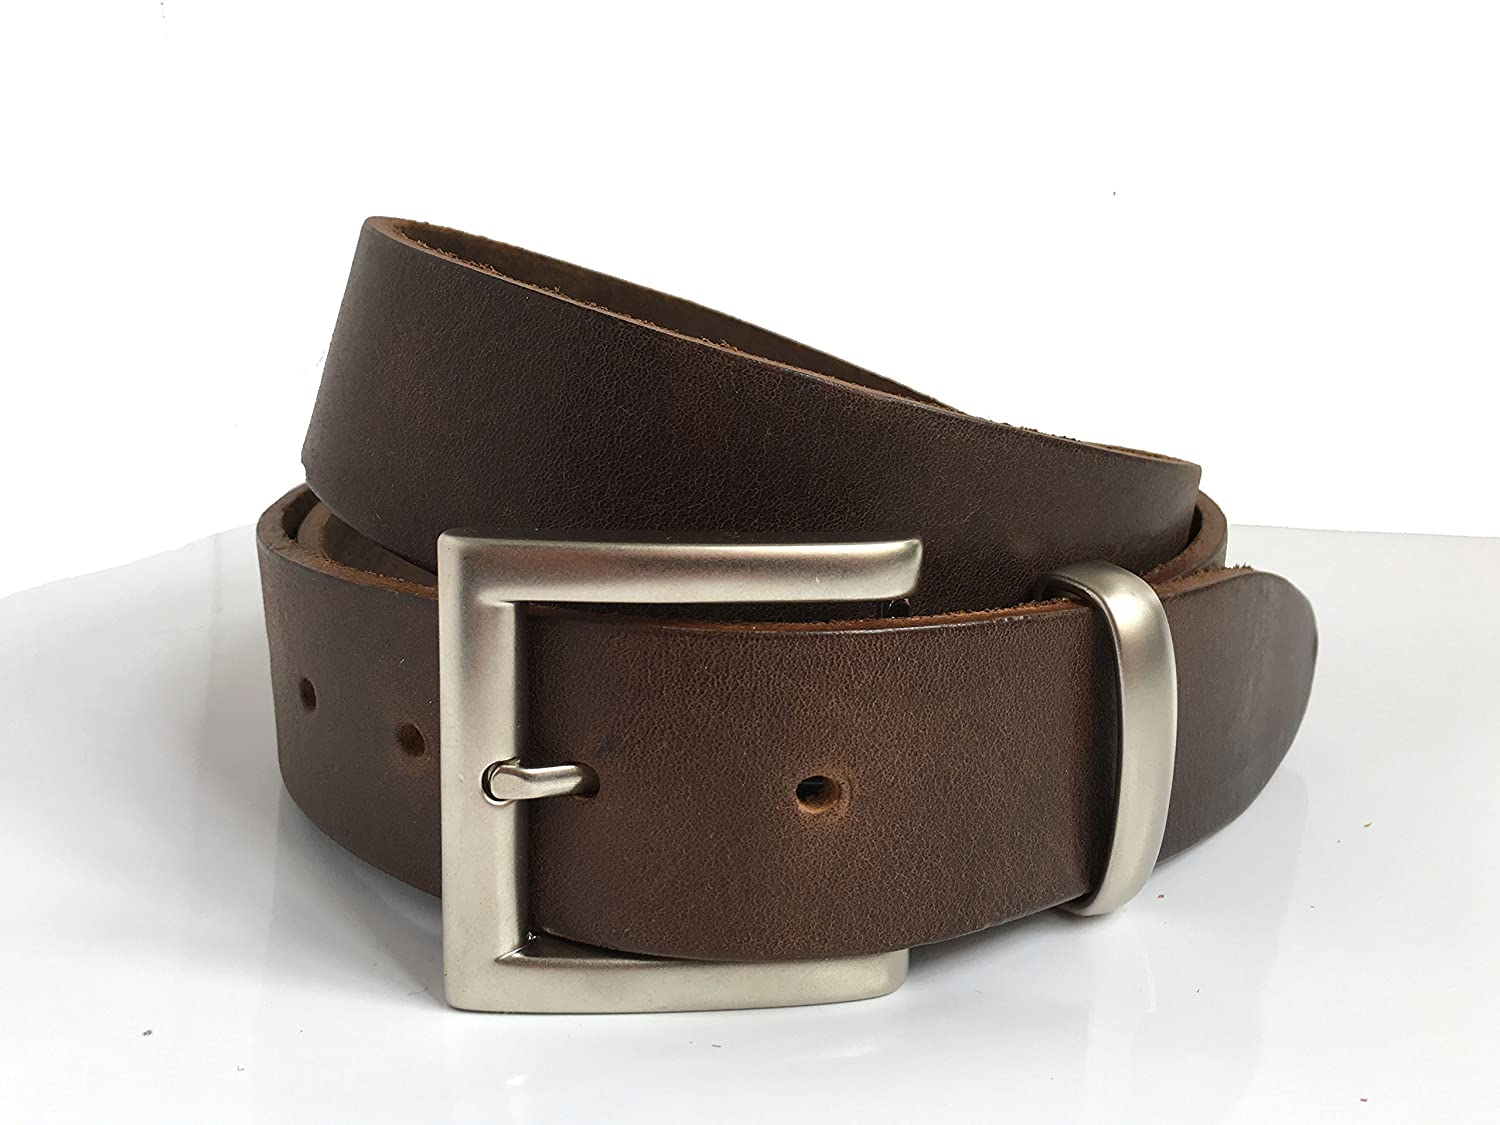 Brown Leather Belt for Men Handmade in UK 1' 1/2 ca. 4cm with Silver Pin Buckle and Silver Loop with Extra Leather Loop Leather Strap also in Black, Tan, Vintage Brown or Navy